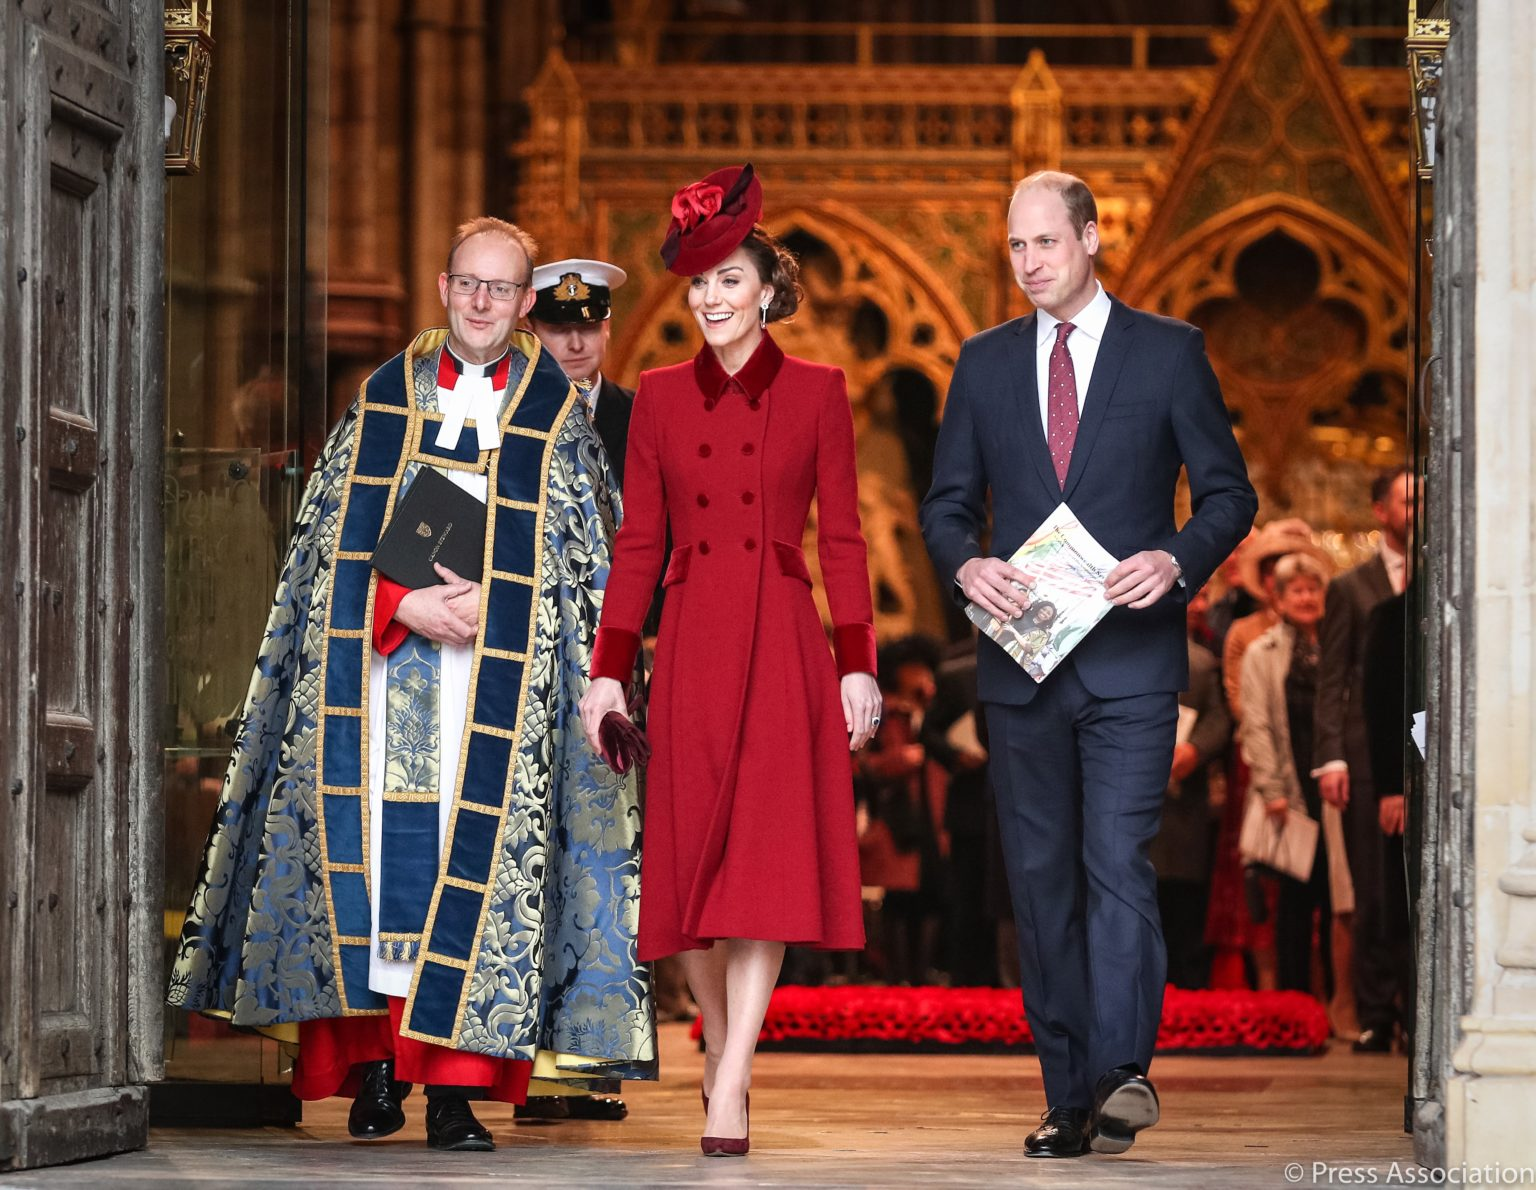 The Duke and Duchess of Cambridge, Prince William and Catherine, have spoken to the medical, charity and voluntary staff from across the commonwealth